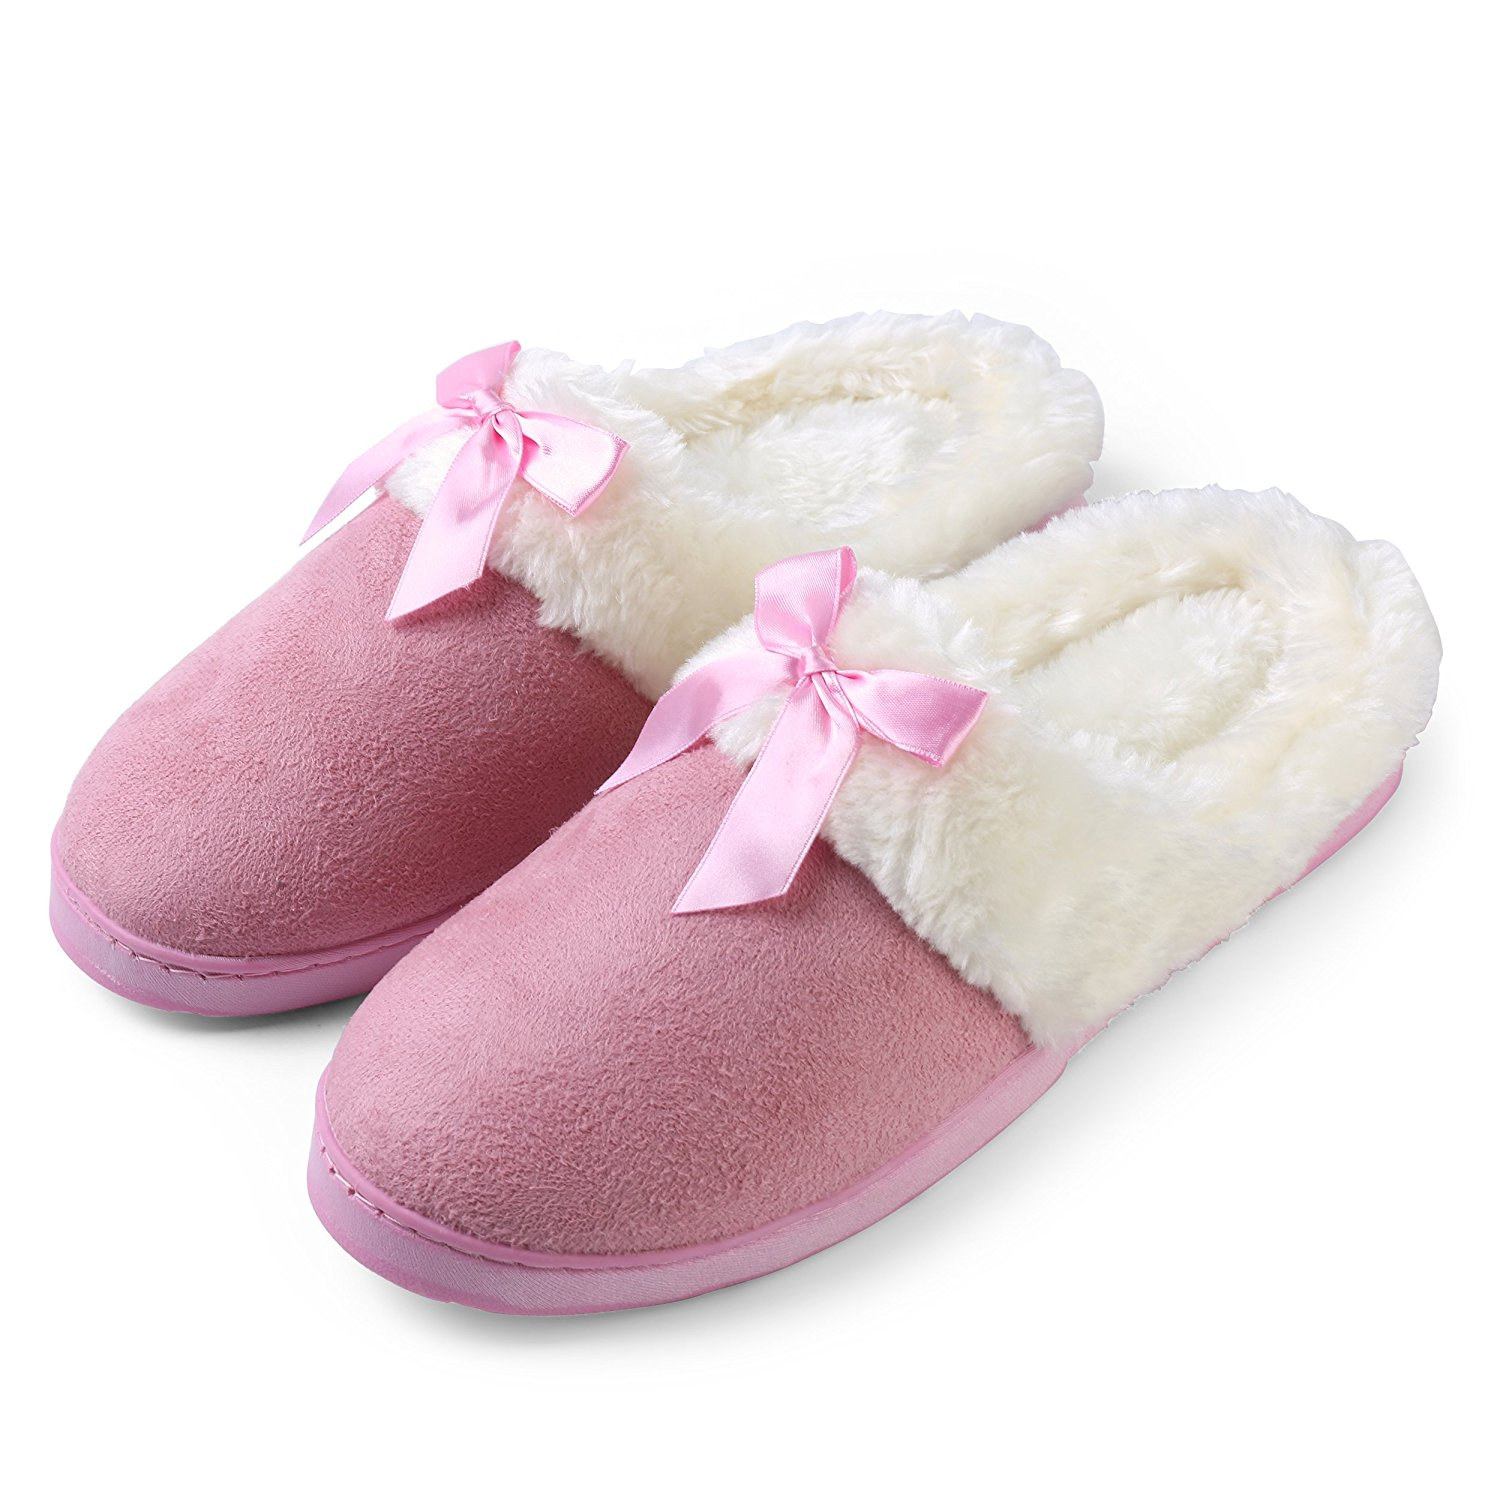 e63cdc59518 Get Quotations · House Home Comfy Plush Fluffy Cozy Dreamer Non-Slip  Slip-On Slippers